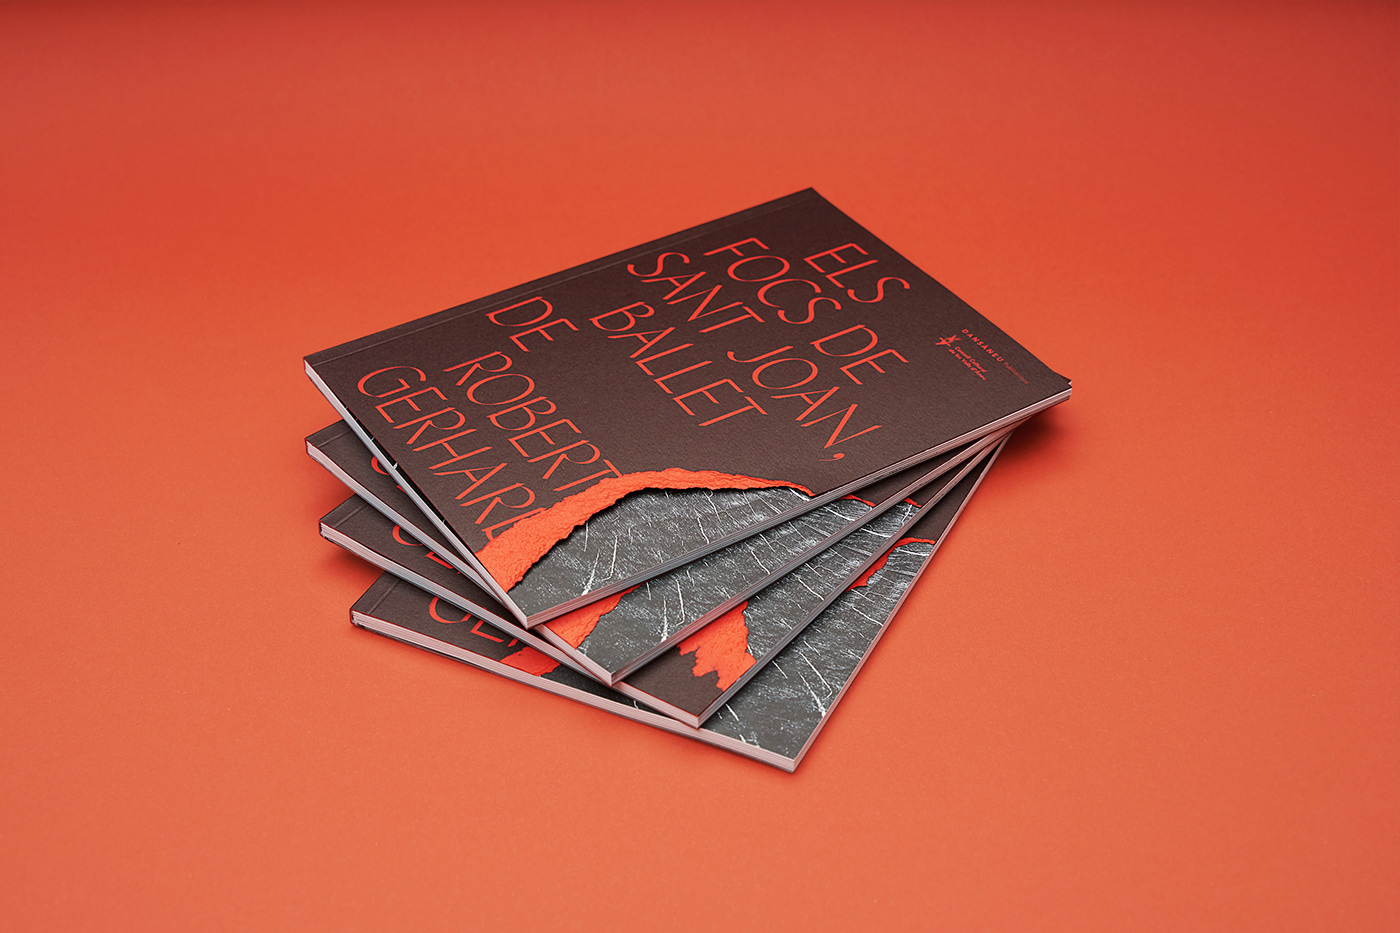 artwork book cover editorial fire grid Layout red stripes typography